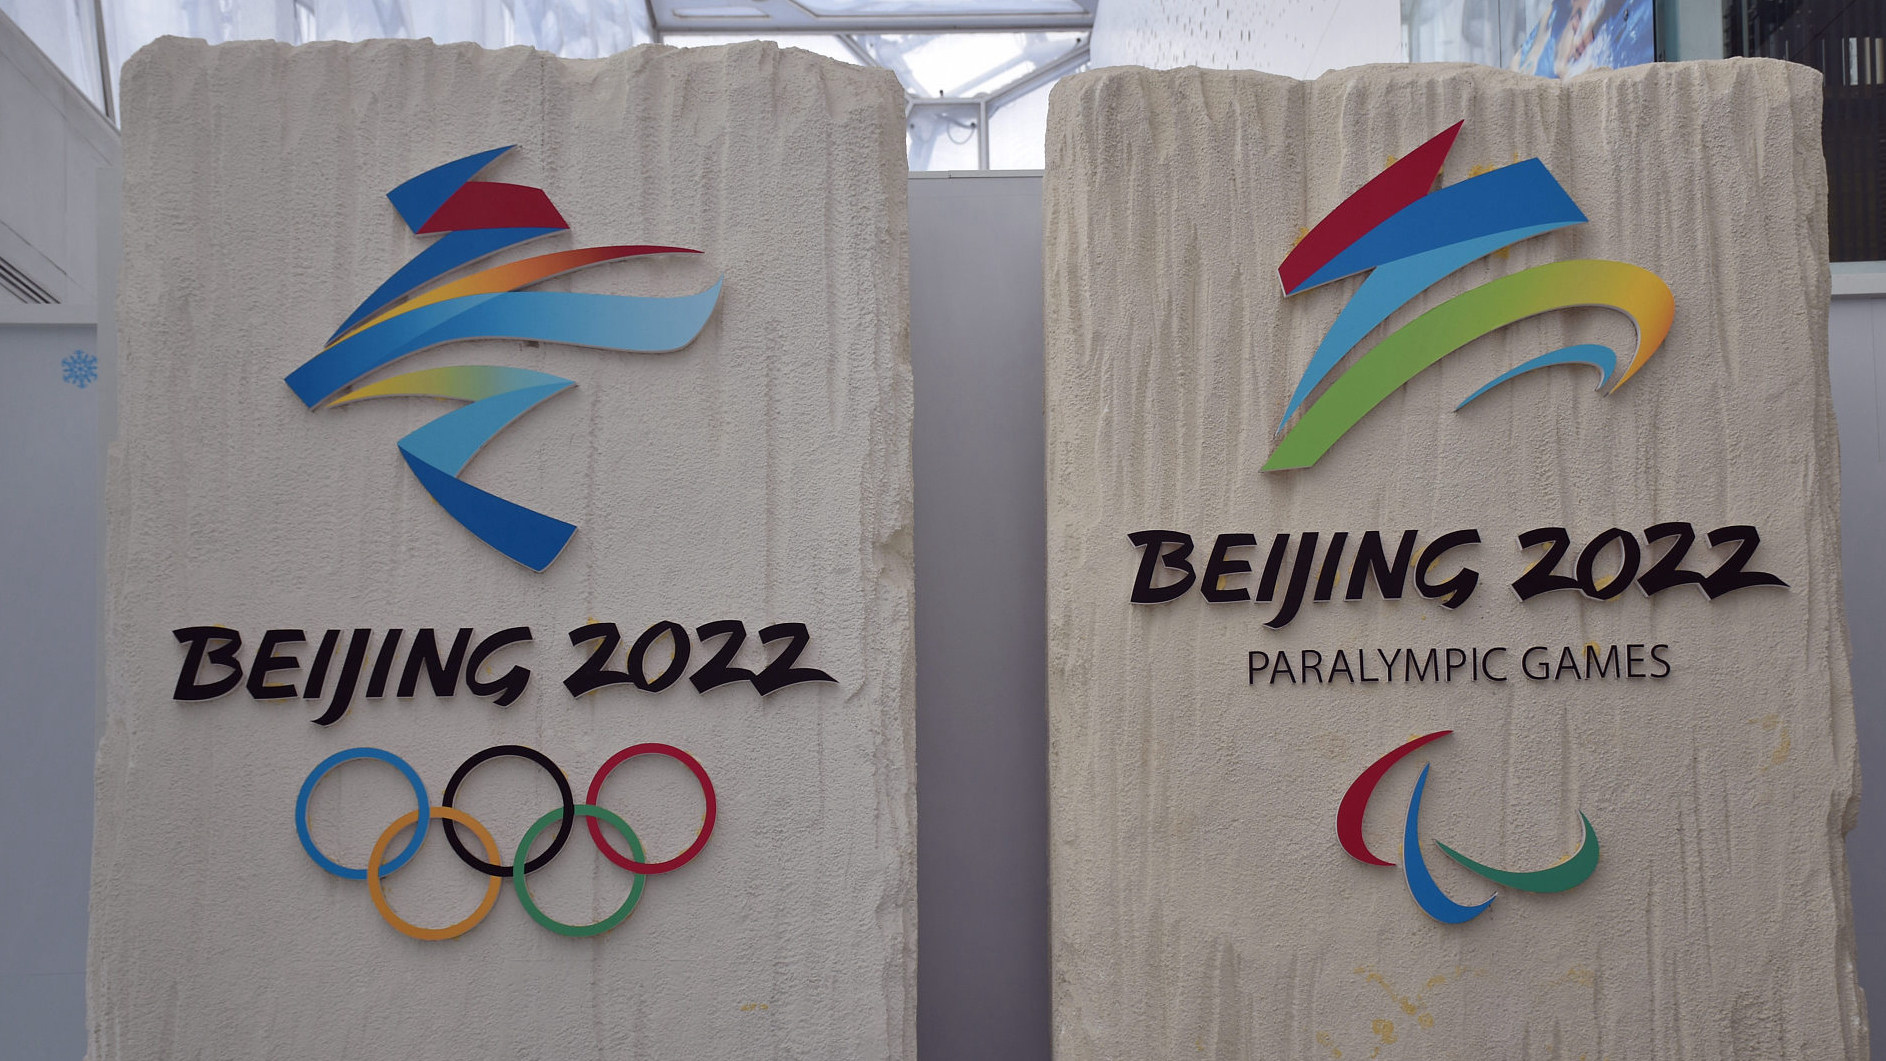 No international sport events in China this year except for Beijing 2022 trials